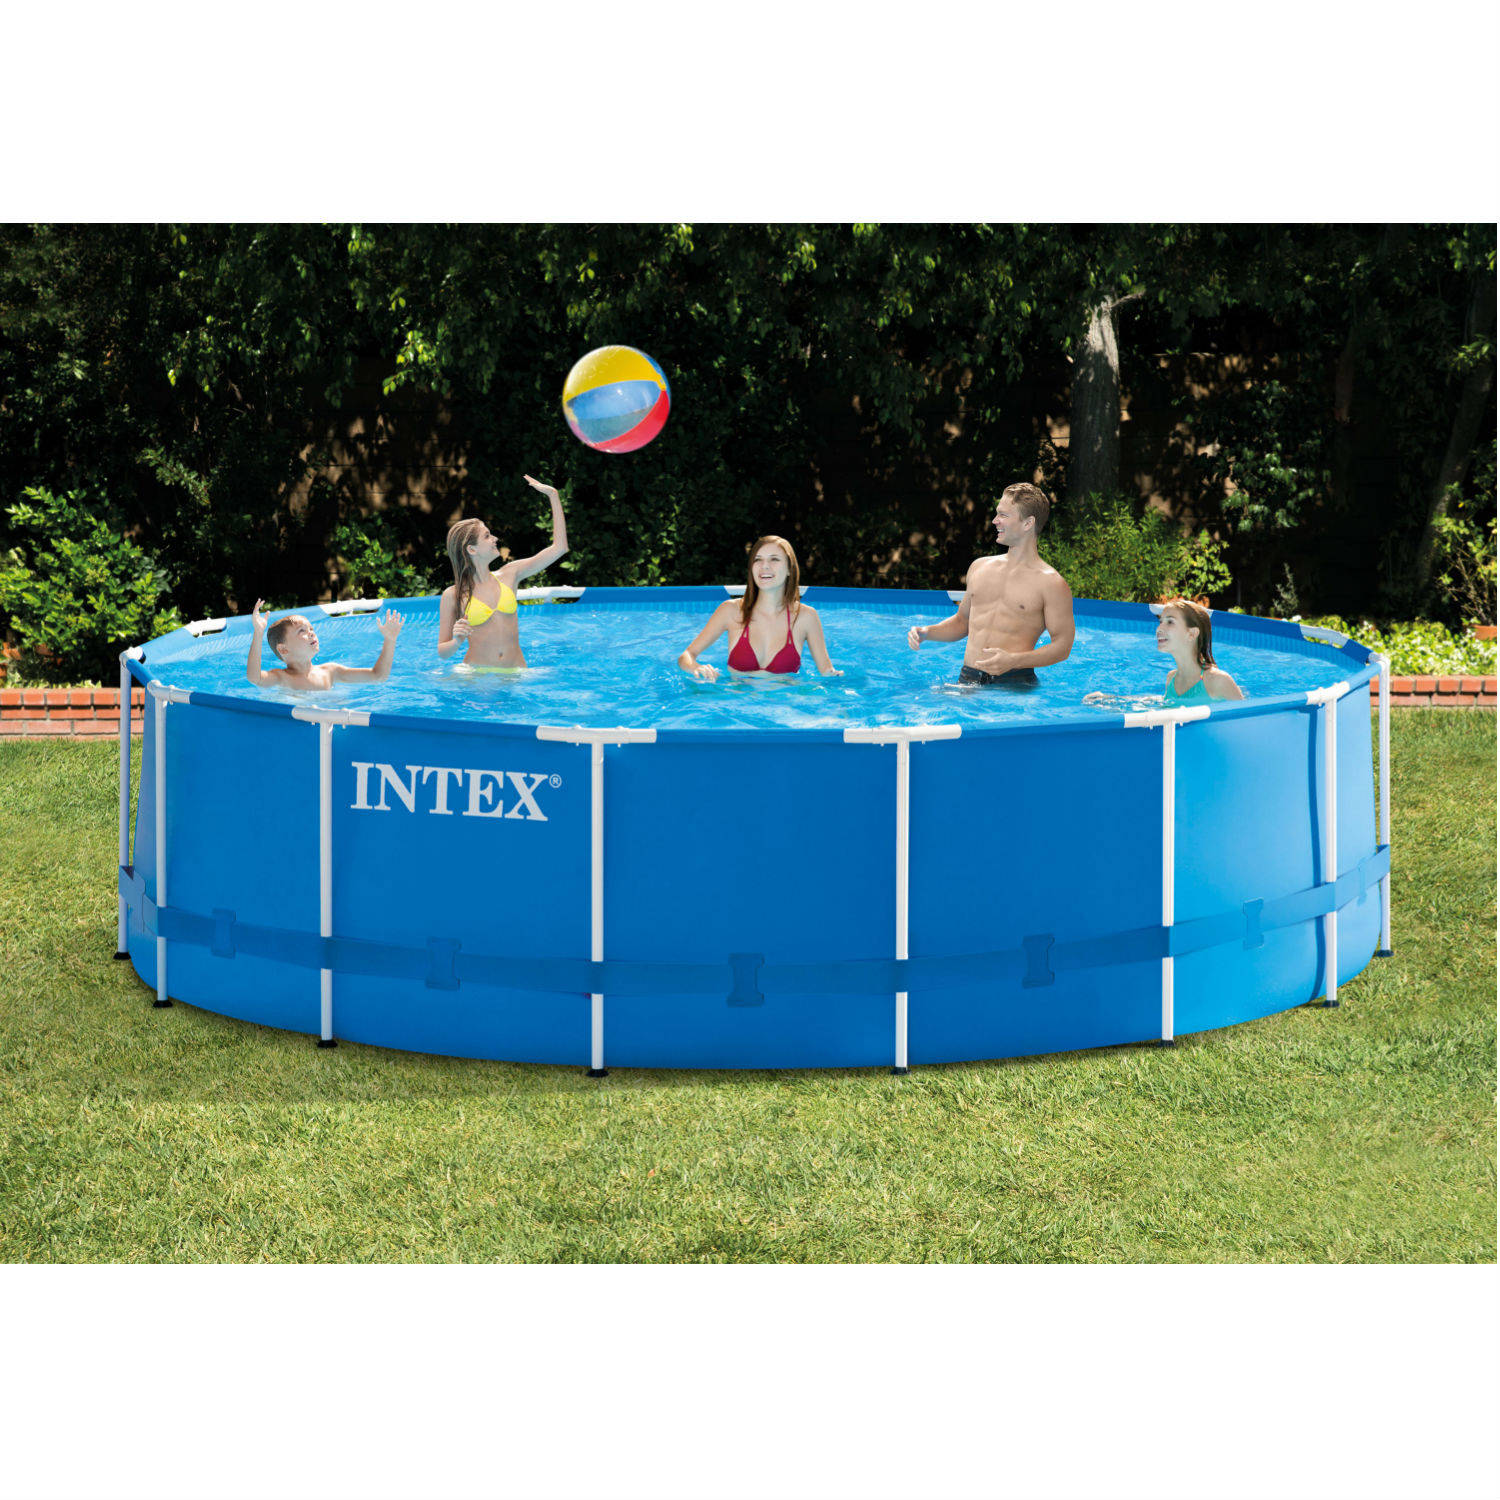 "Intex 15' x 48"" Metal Frame Above Ground Swimming Pool with Filter Pump"